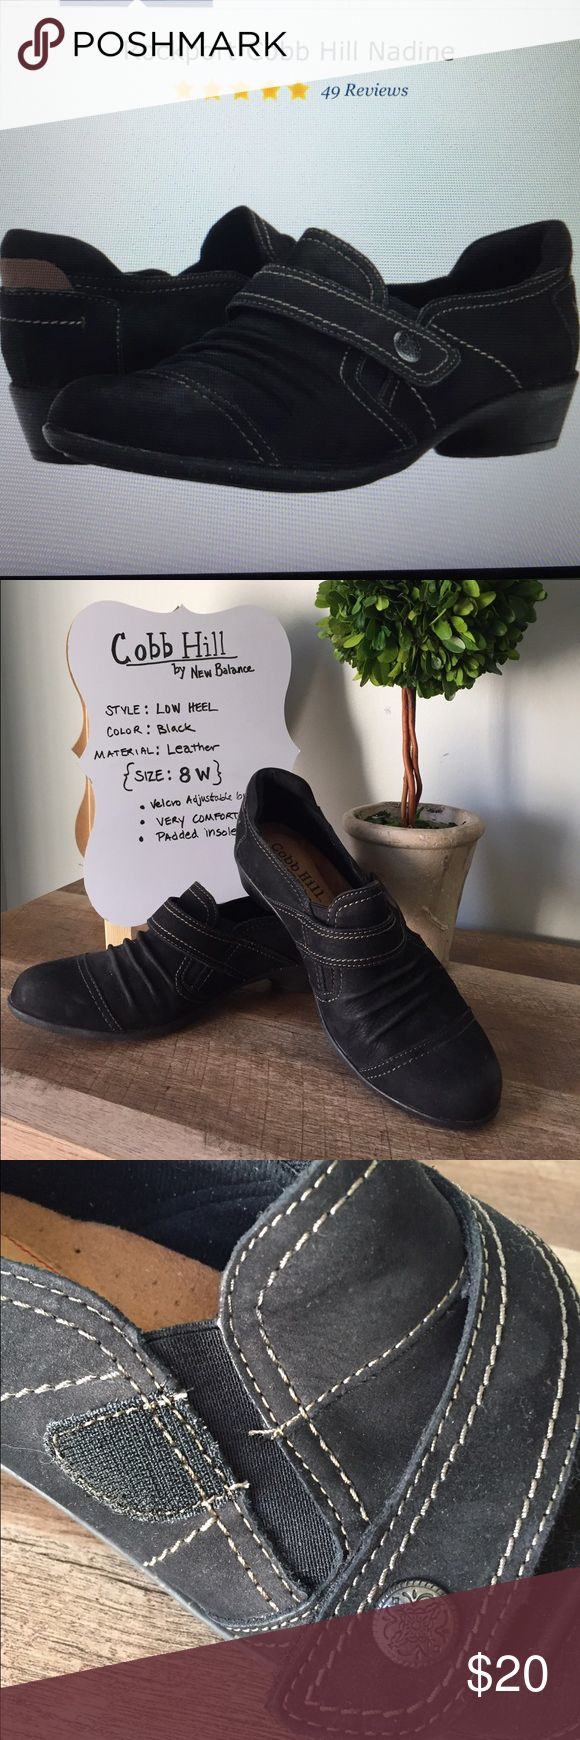 "Cobb Hill Nadine Black Leather Bootie EUC Full grain leather upper. Dual gore panels and a Velcro strap for easy on and off.  Heel 1 1/4"" high. Durable rubber soles. Looks cute with jeans and skirts. Incredibly comfort and you will like the arch support. My favorite brand of shoes for those days you will be on your feet all day. New Balance athletics made these shoes. Cobb Hill Shoes Ankle Boots & Booties"